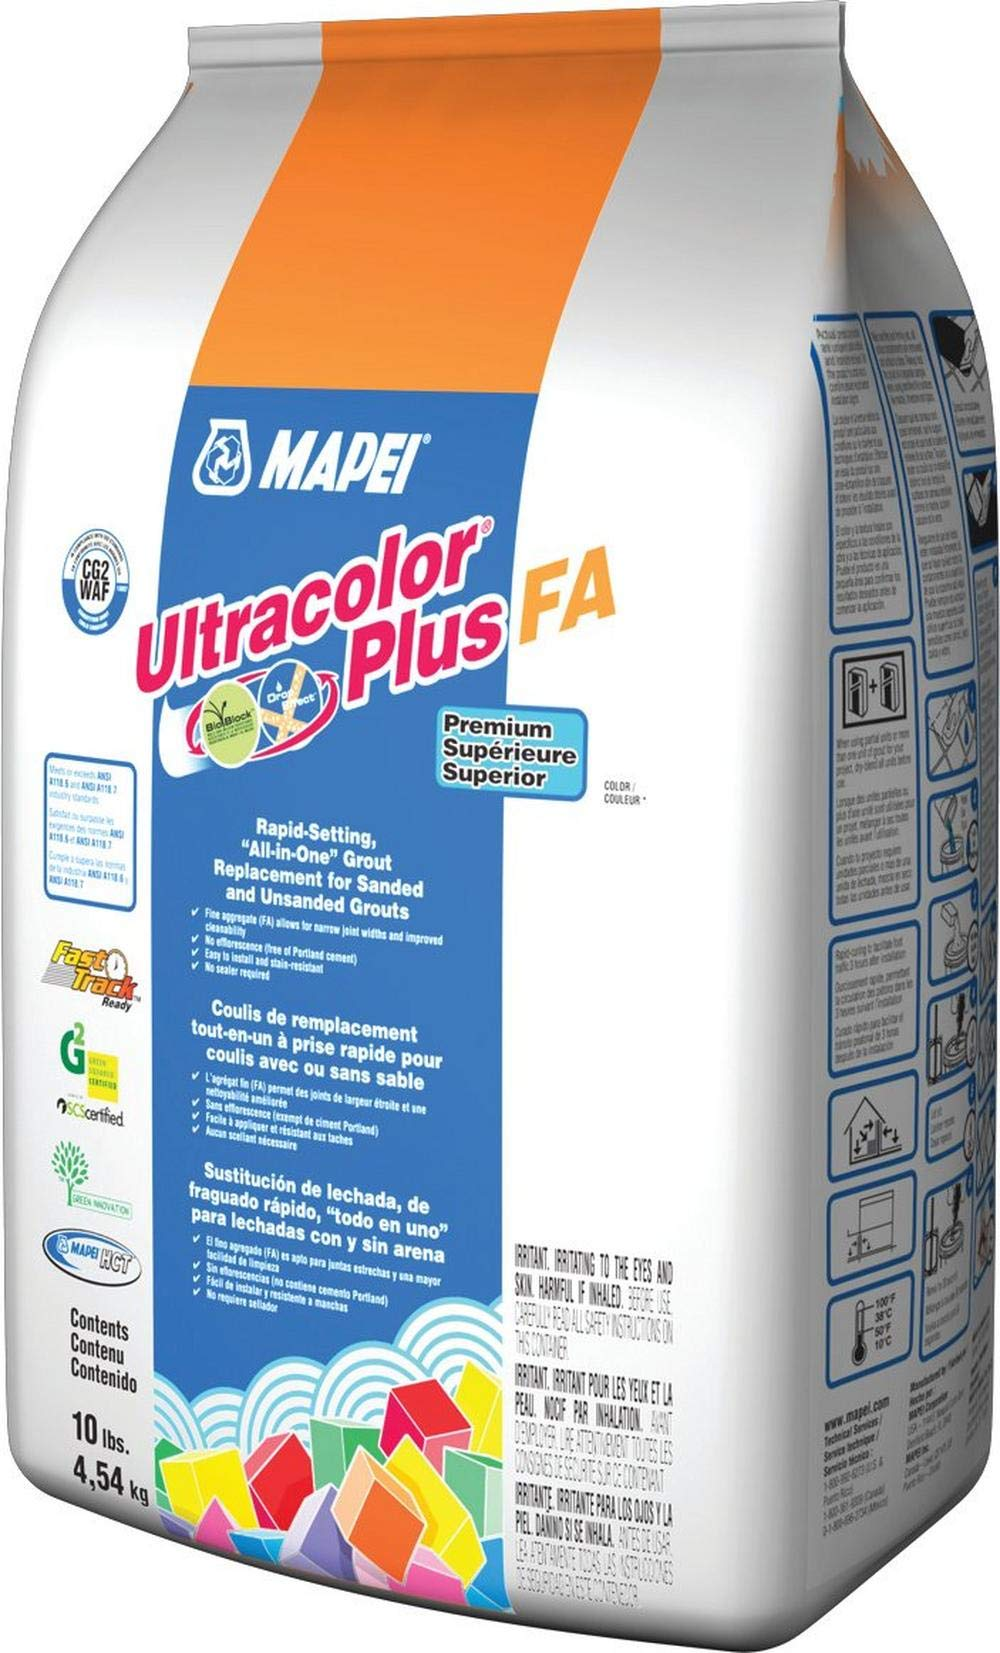 MAPEI Ultracolor Plus FA Powder Grout - 10LB/Bag - (38 Avalanche) by Ultracolor Plus FA (Image #2)